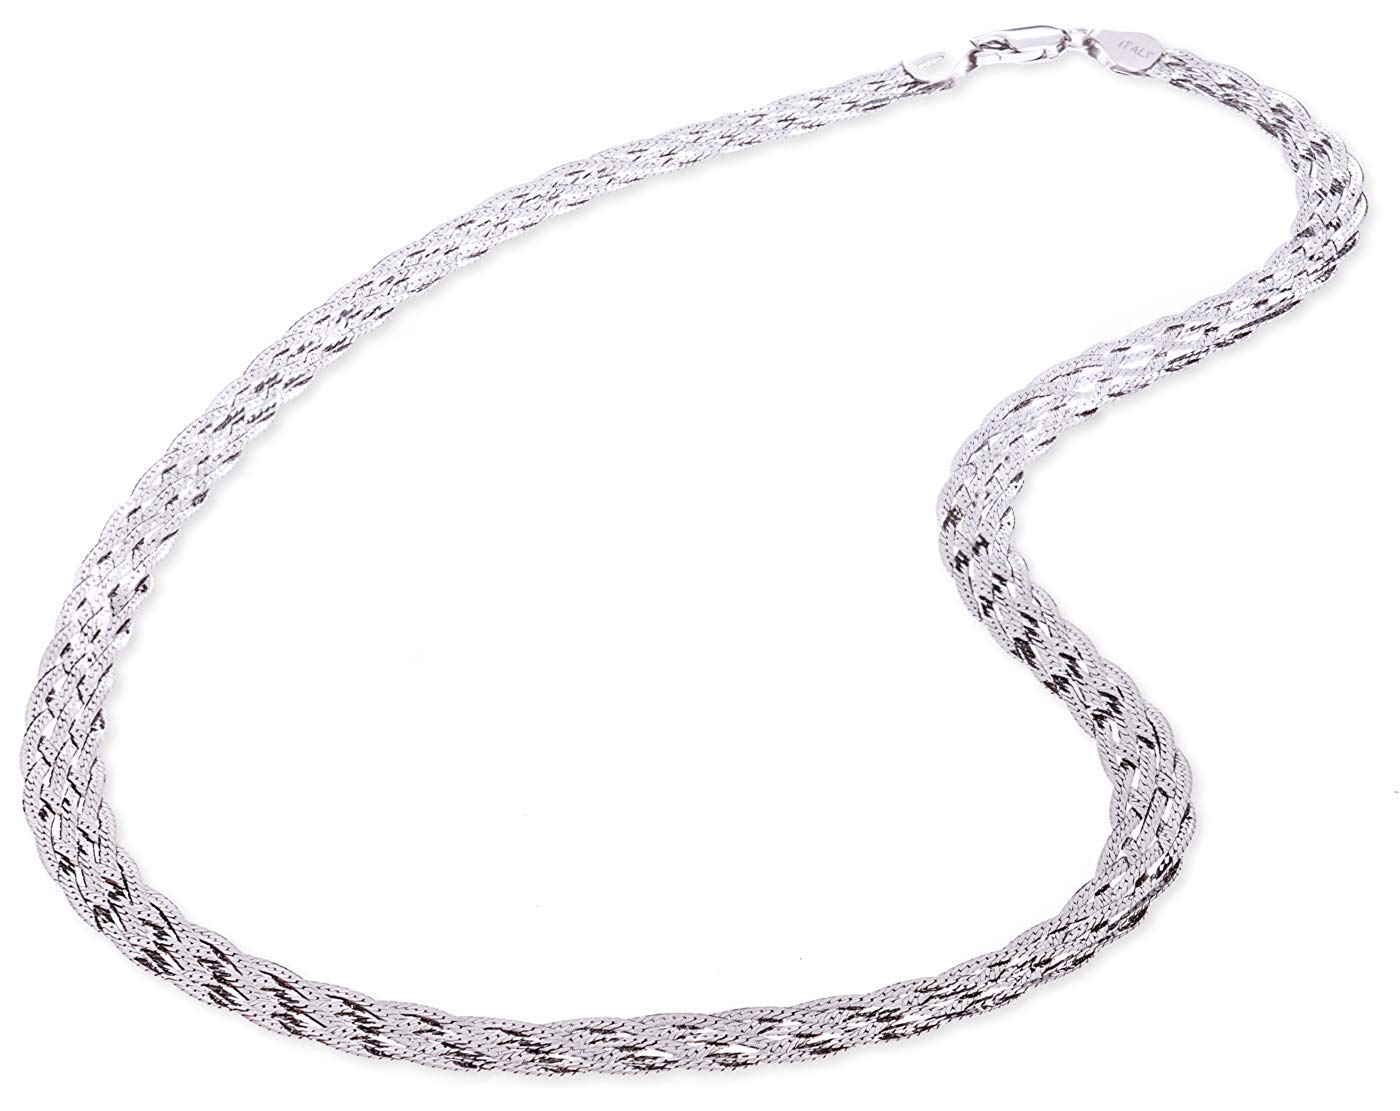 4a0aaab4f1e484 Get Quotations · SilverLuxe 925 Sterling Silver 6 Row Braided Herringbone  Chain Italian Made 18